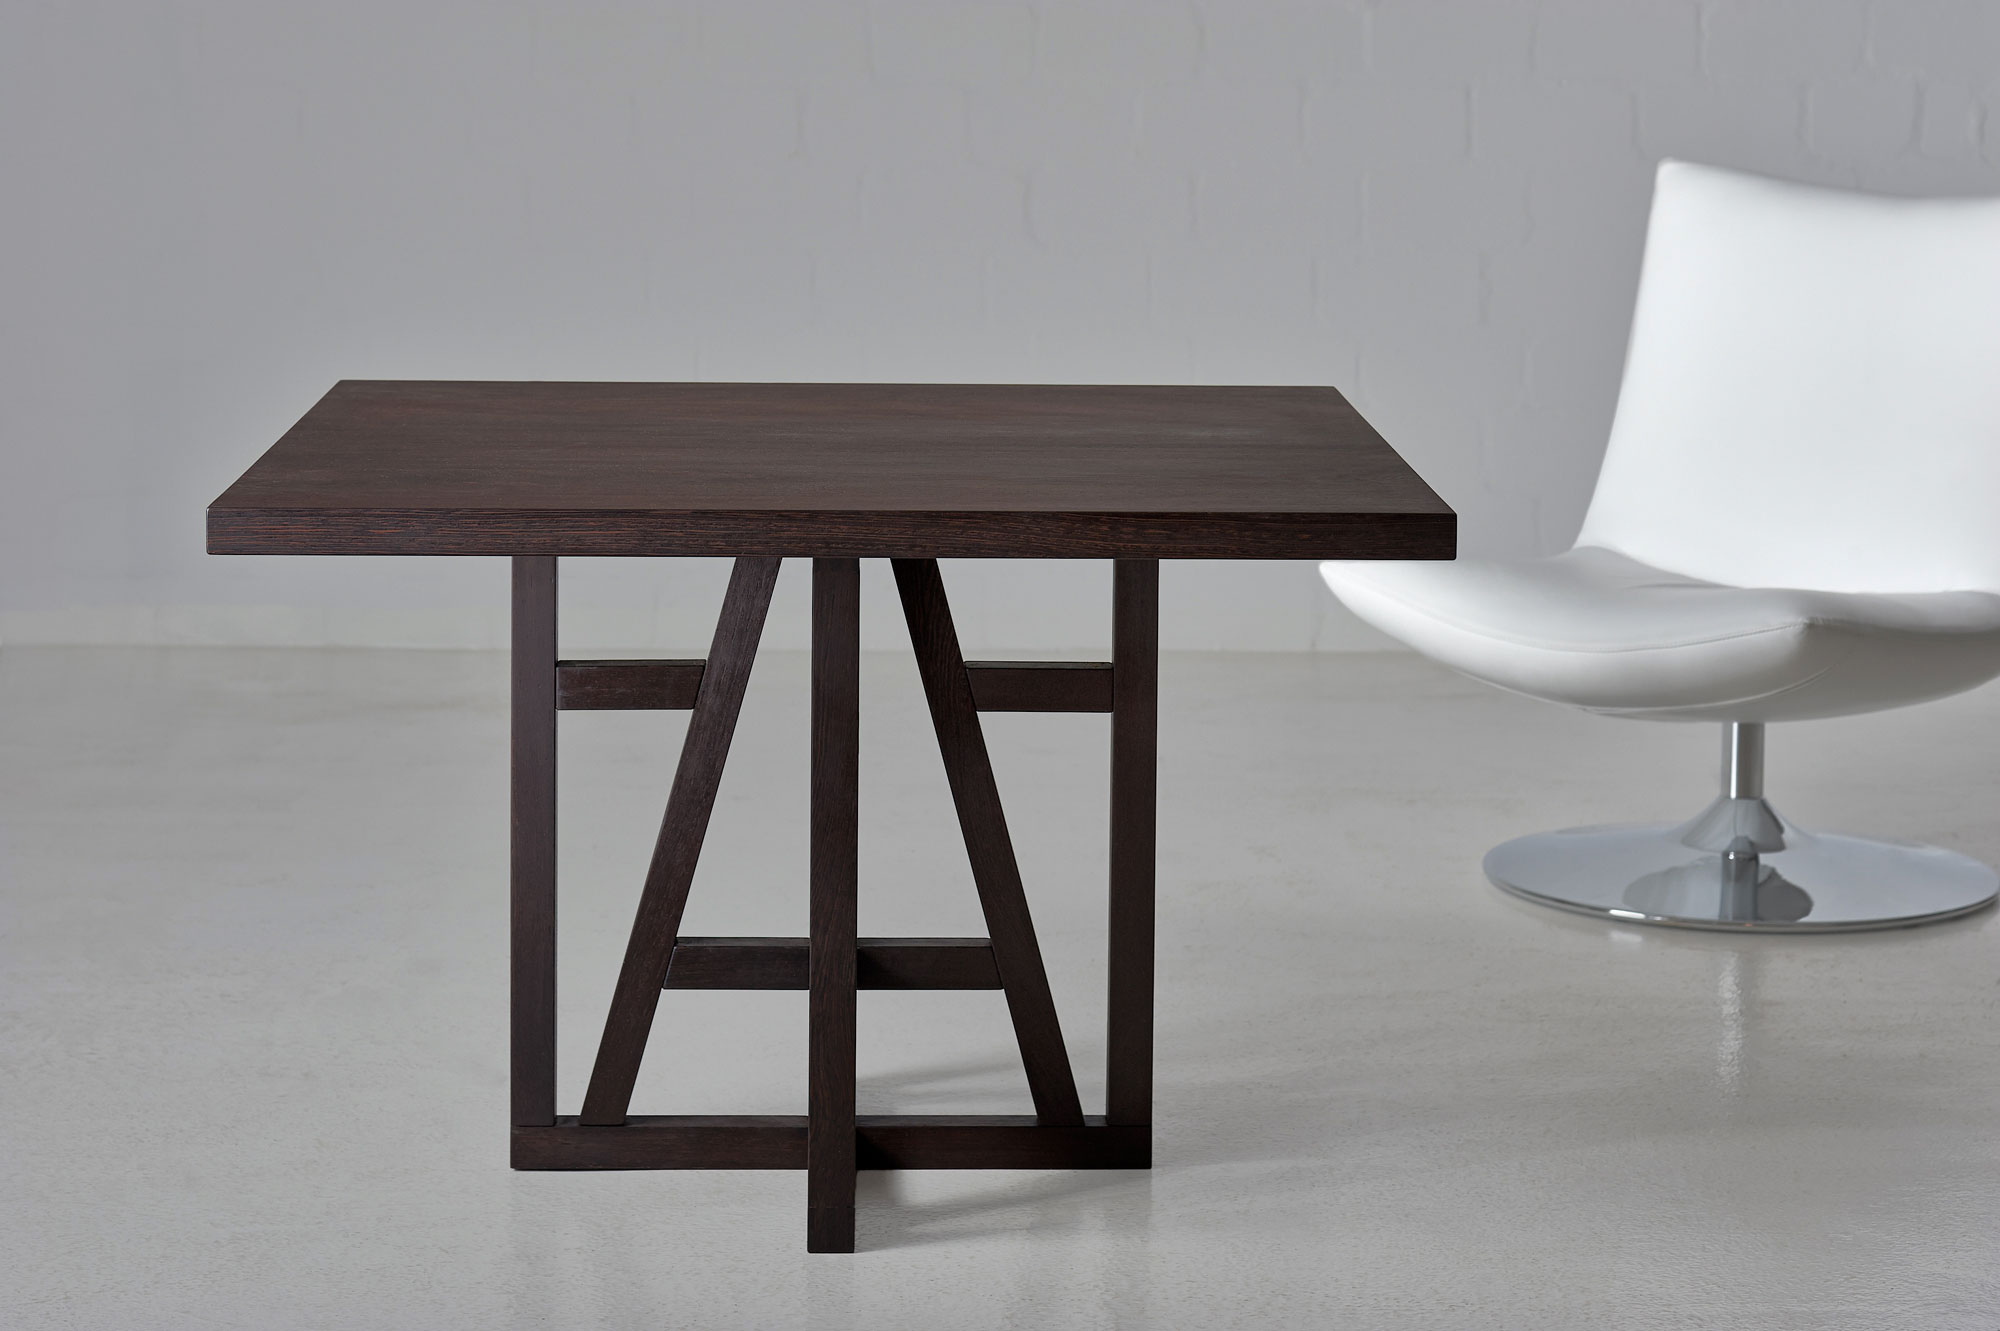 Square Designer Table FACHWERK SQUARE fachwerk0010 custom made in solid wood by vitamin design